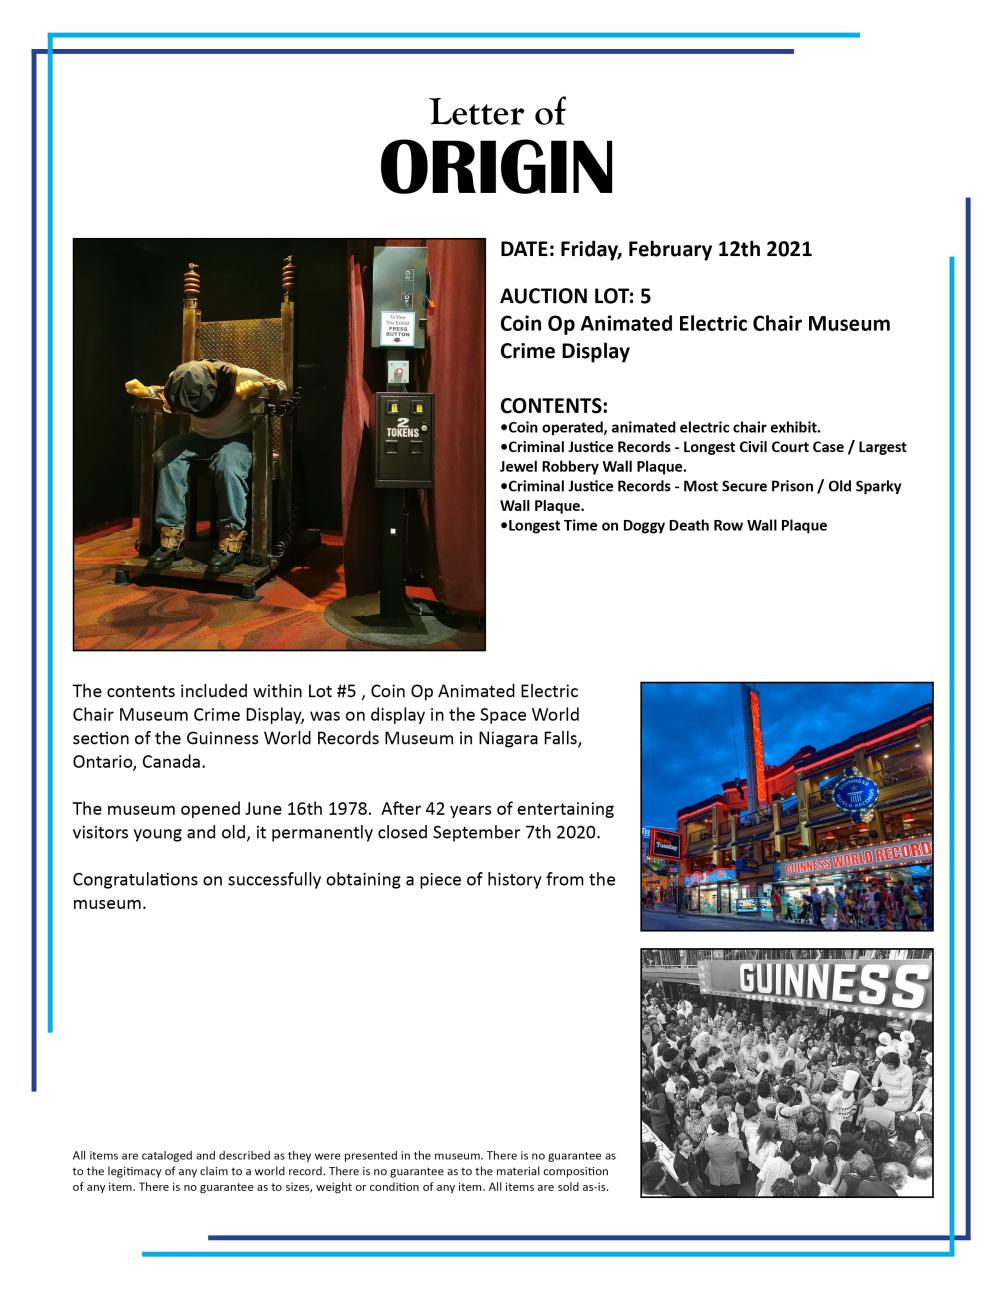 Coin Op Animated Electric Chair Museum Crime Oddity Display Guinness World Records